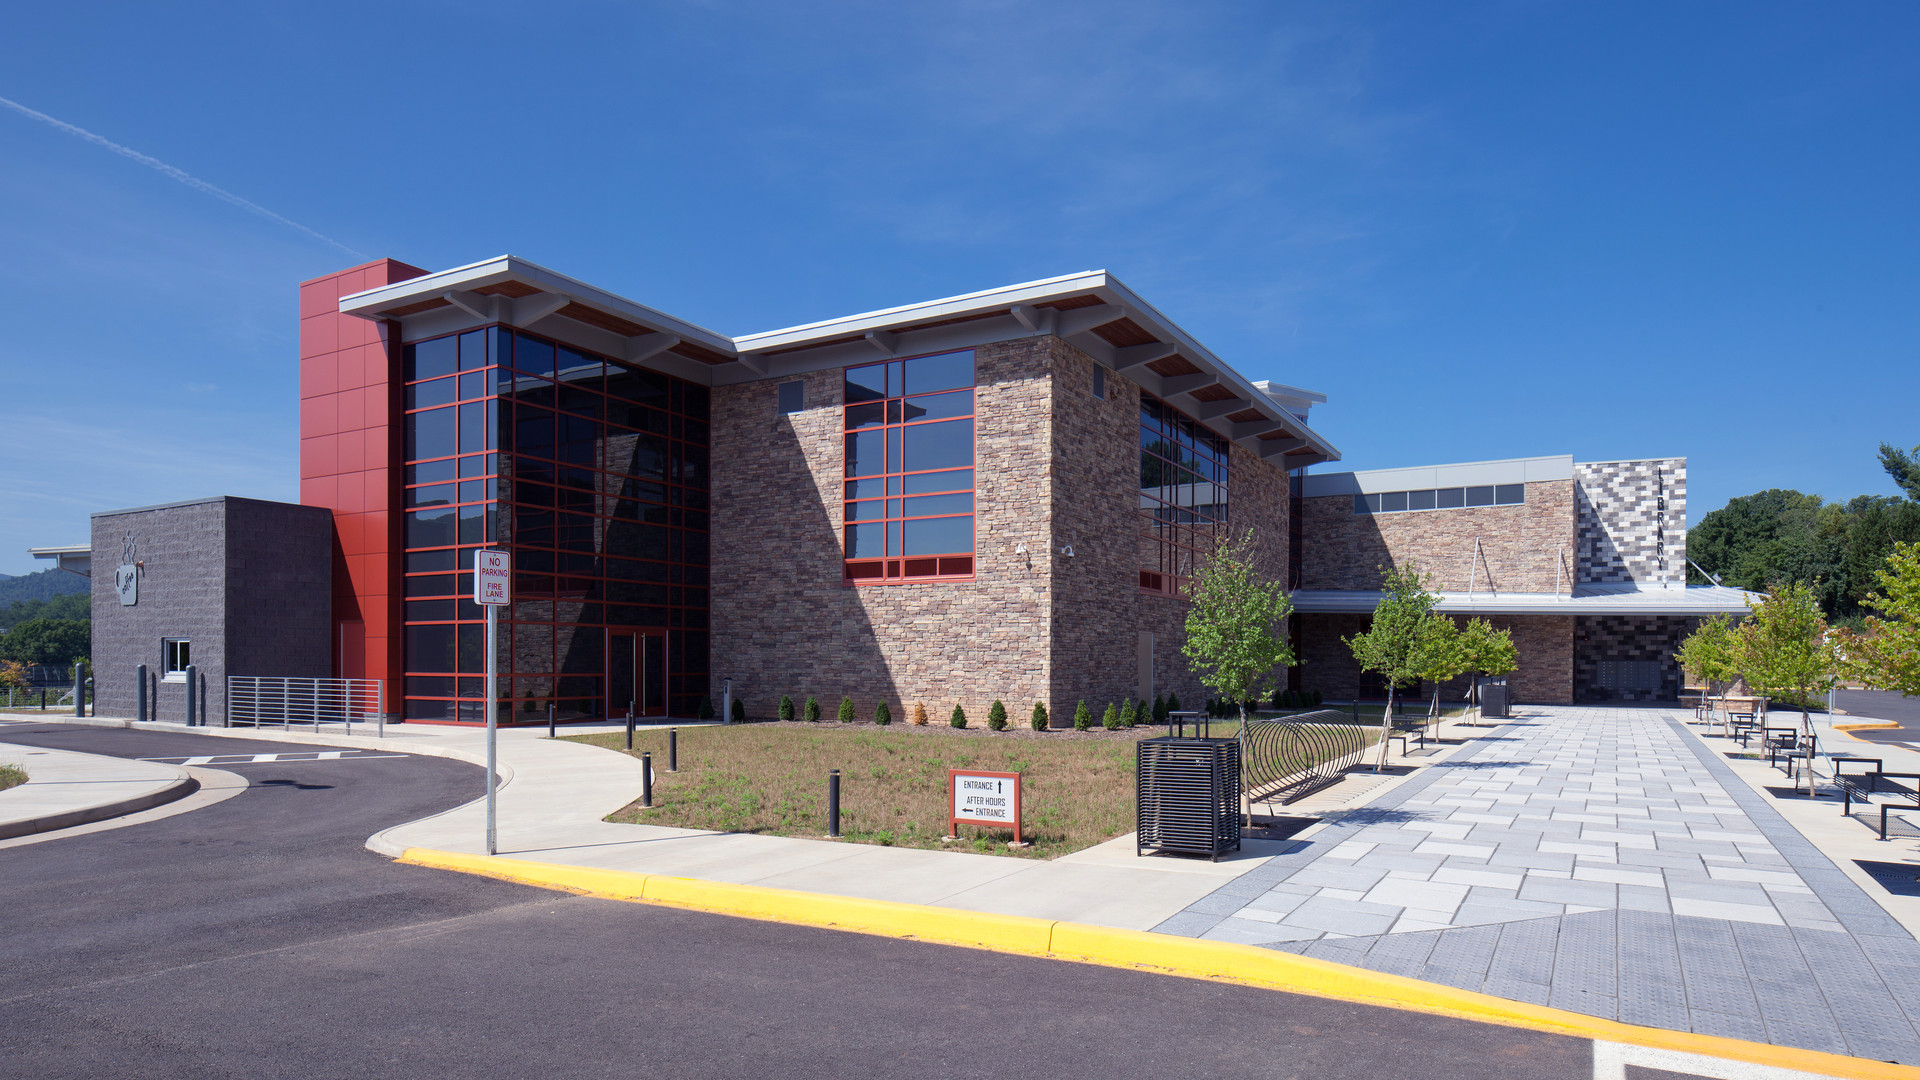 South County Library Roanoke County Public Library